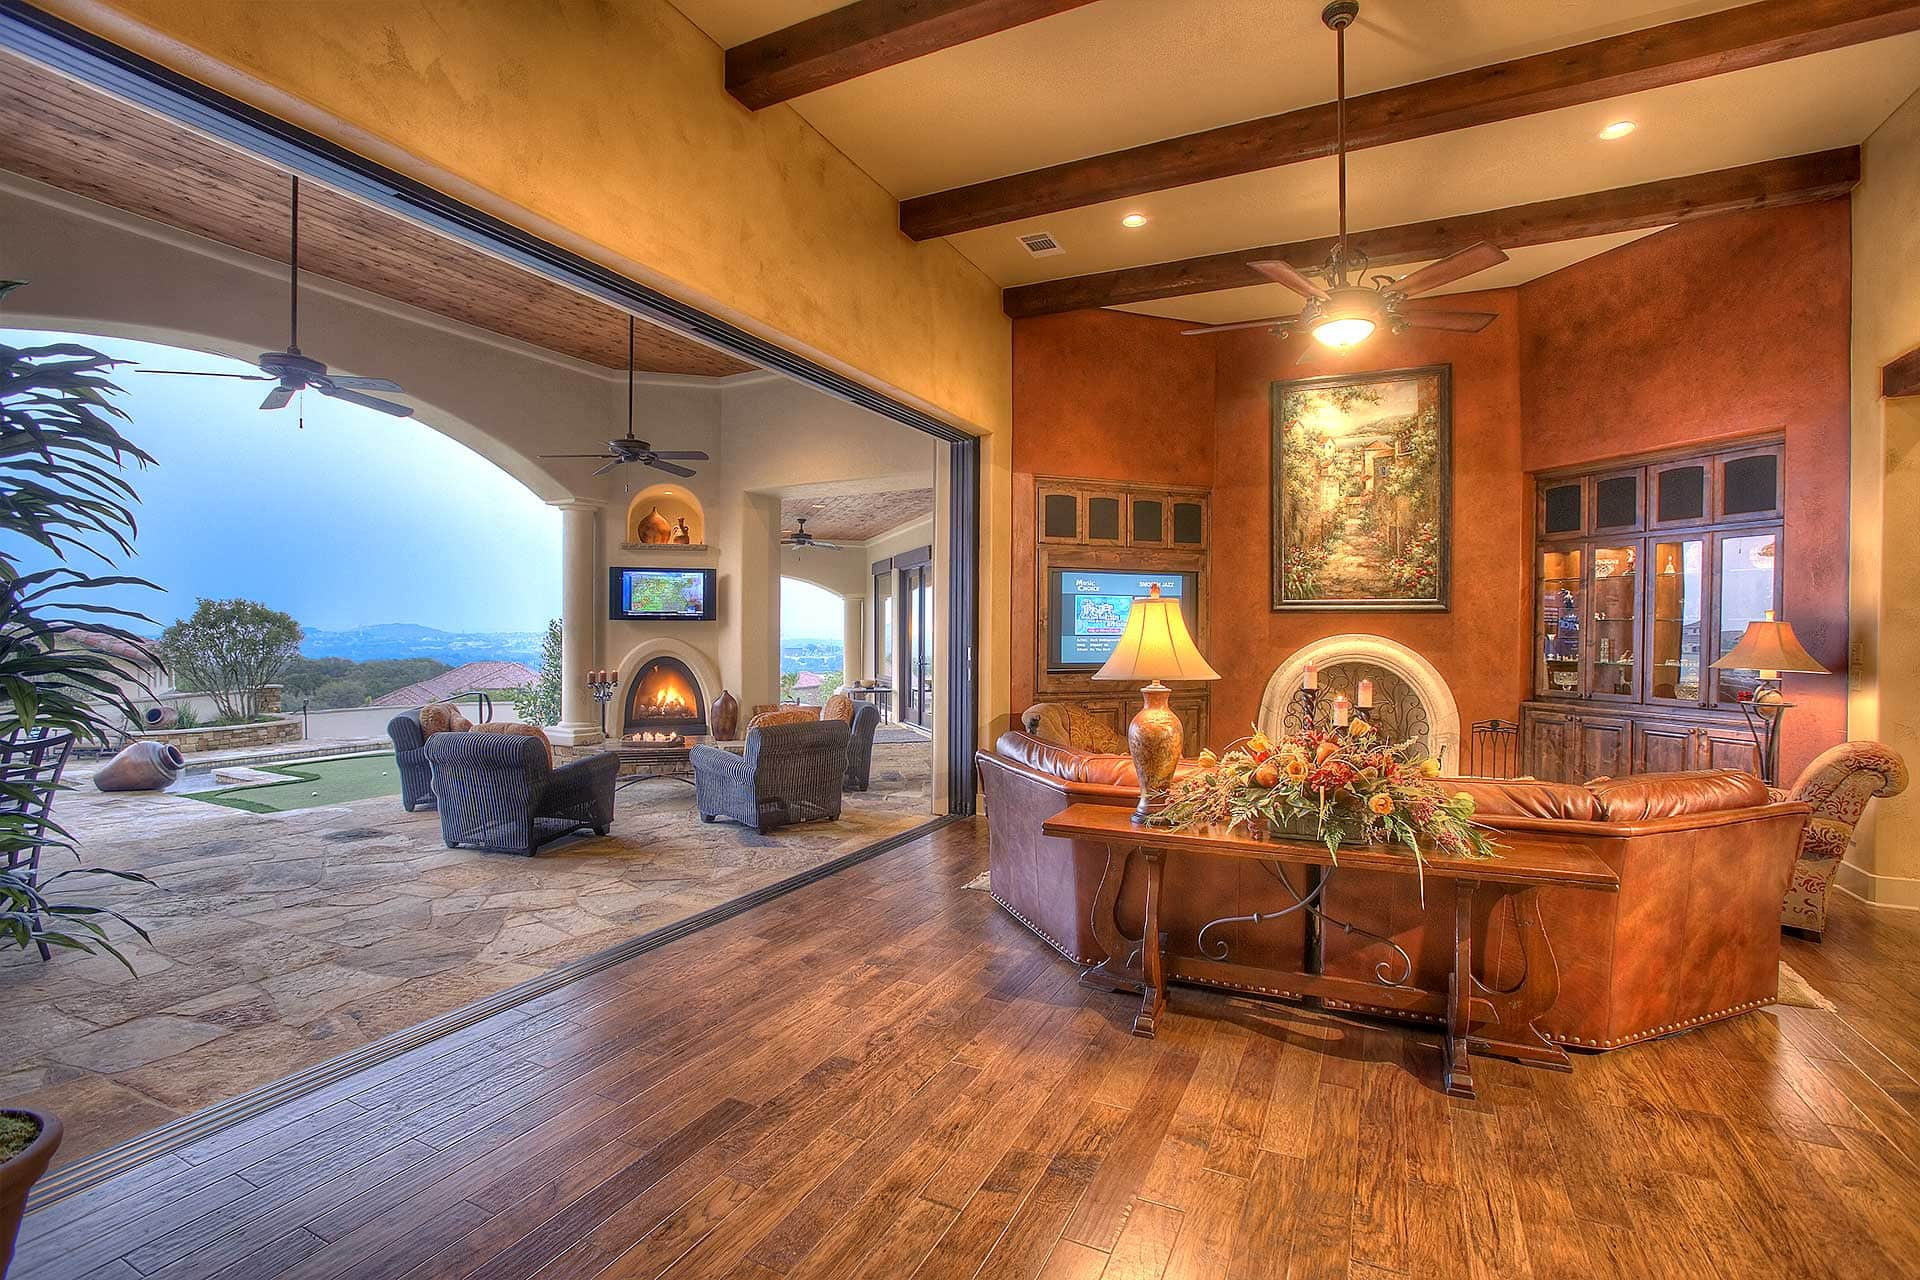 Spanish Mediterranean 5123 - Living Room featuring 16' Retractable Glass Wall